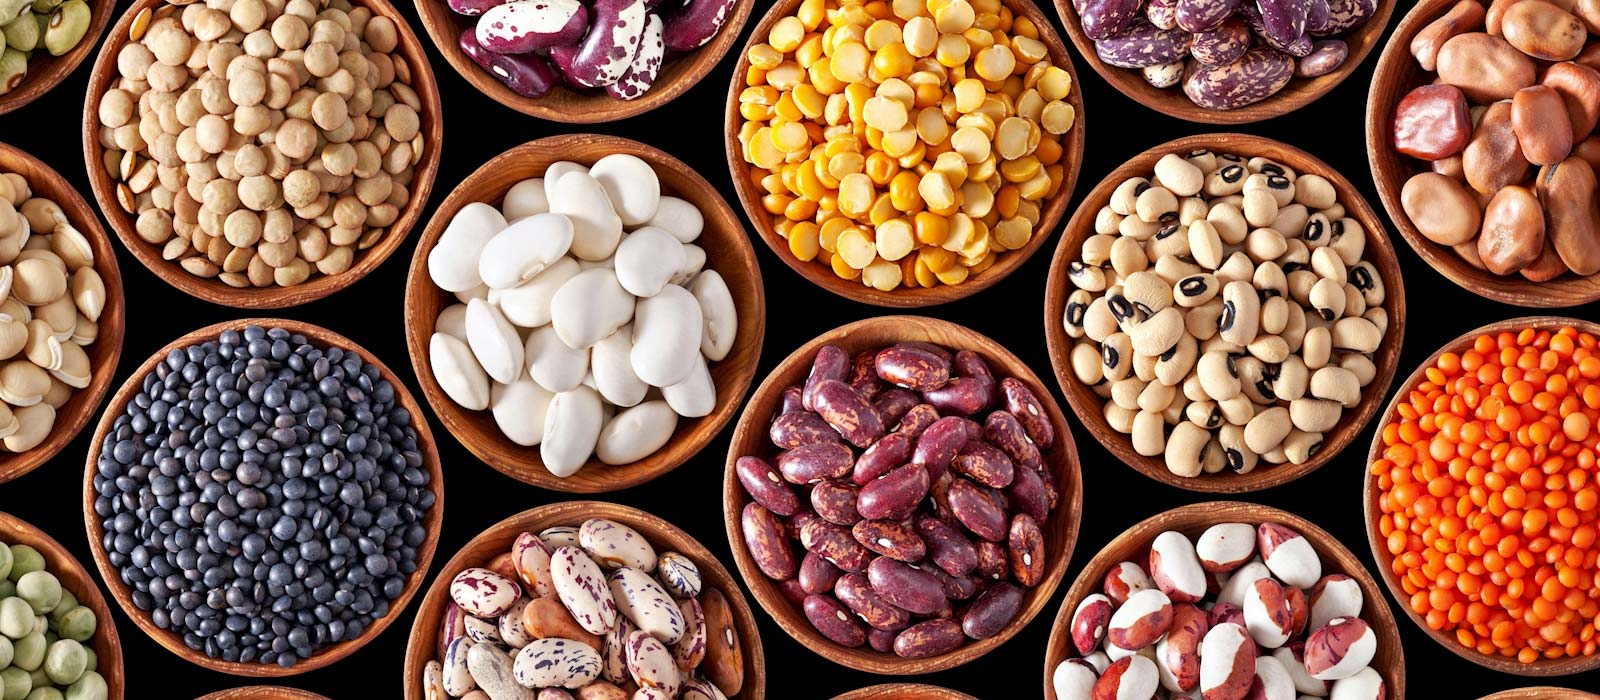 LEGUMES AND GRAINS ARE BAD FOR YOU ? PALEO MYTHS